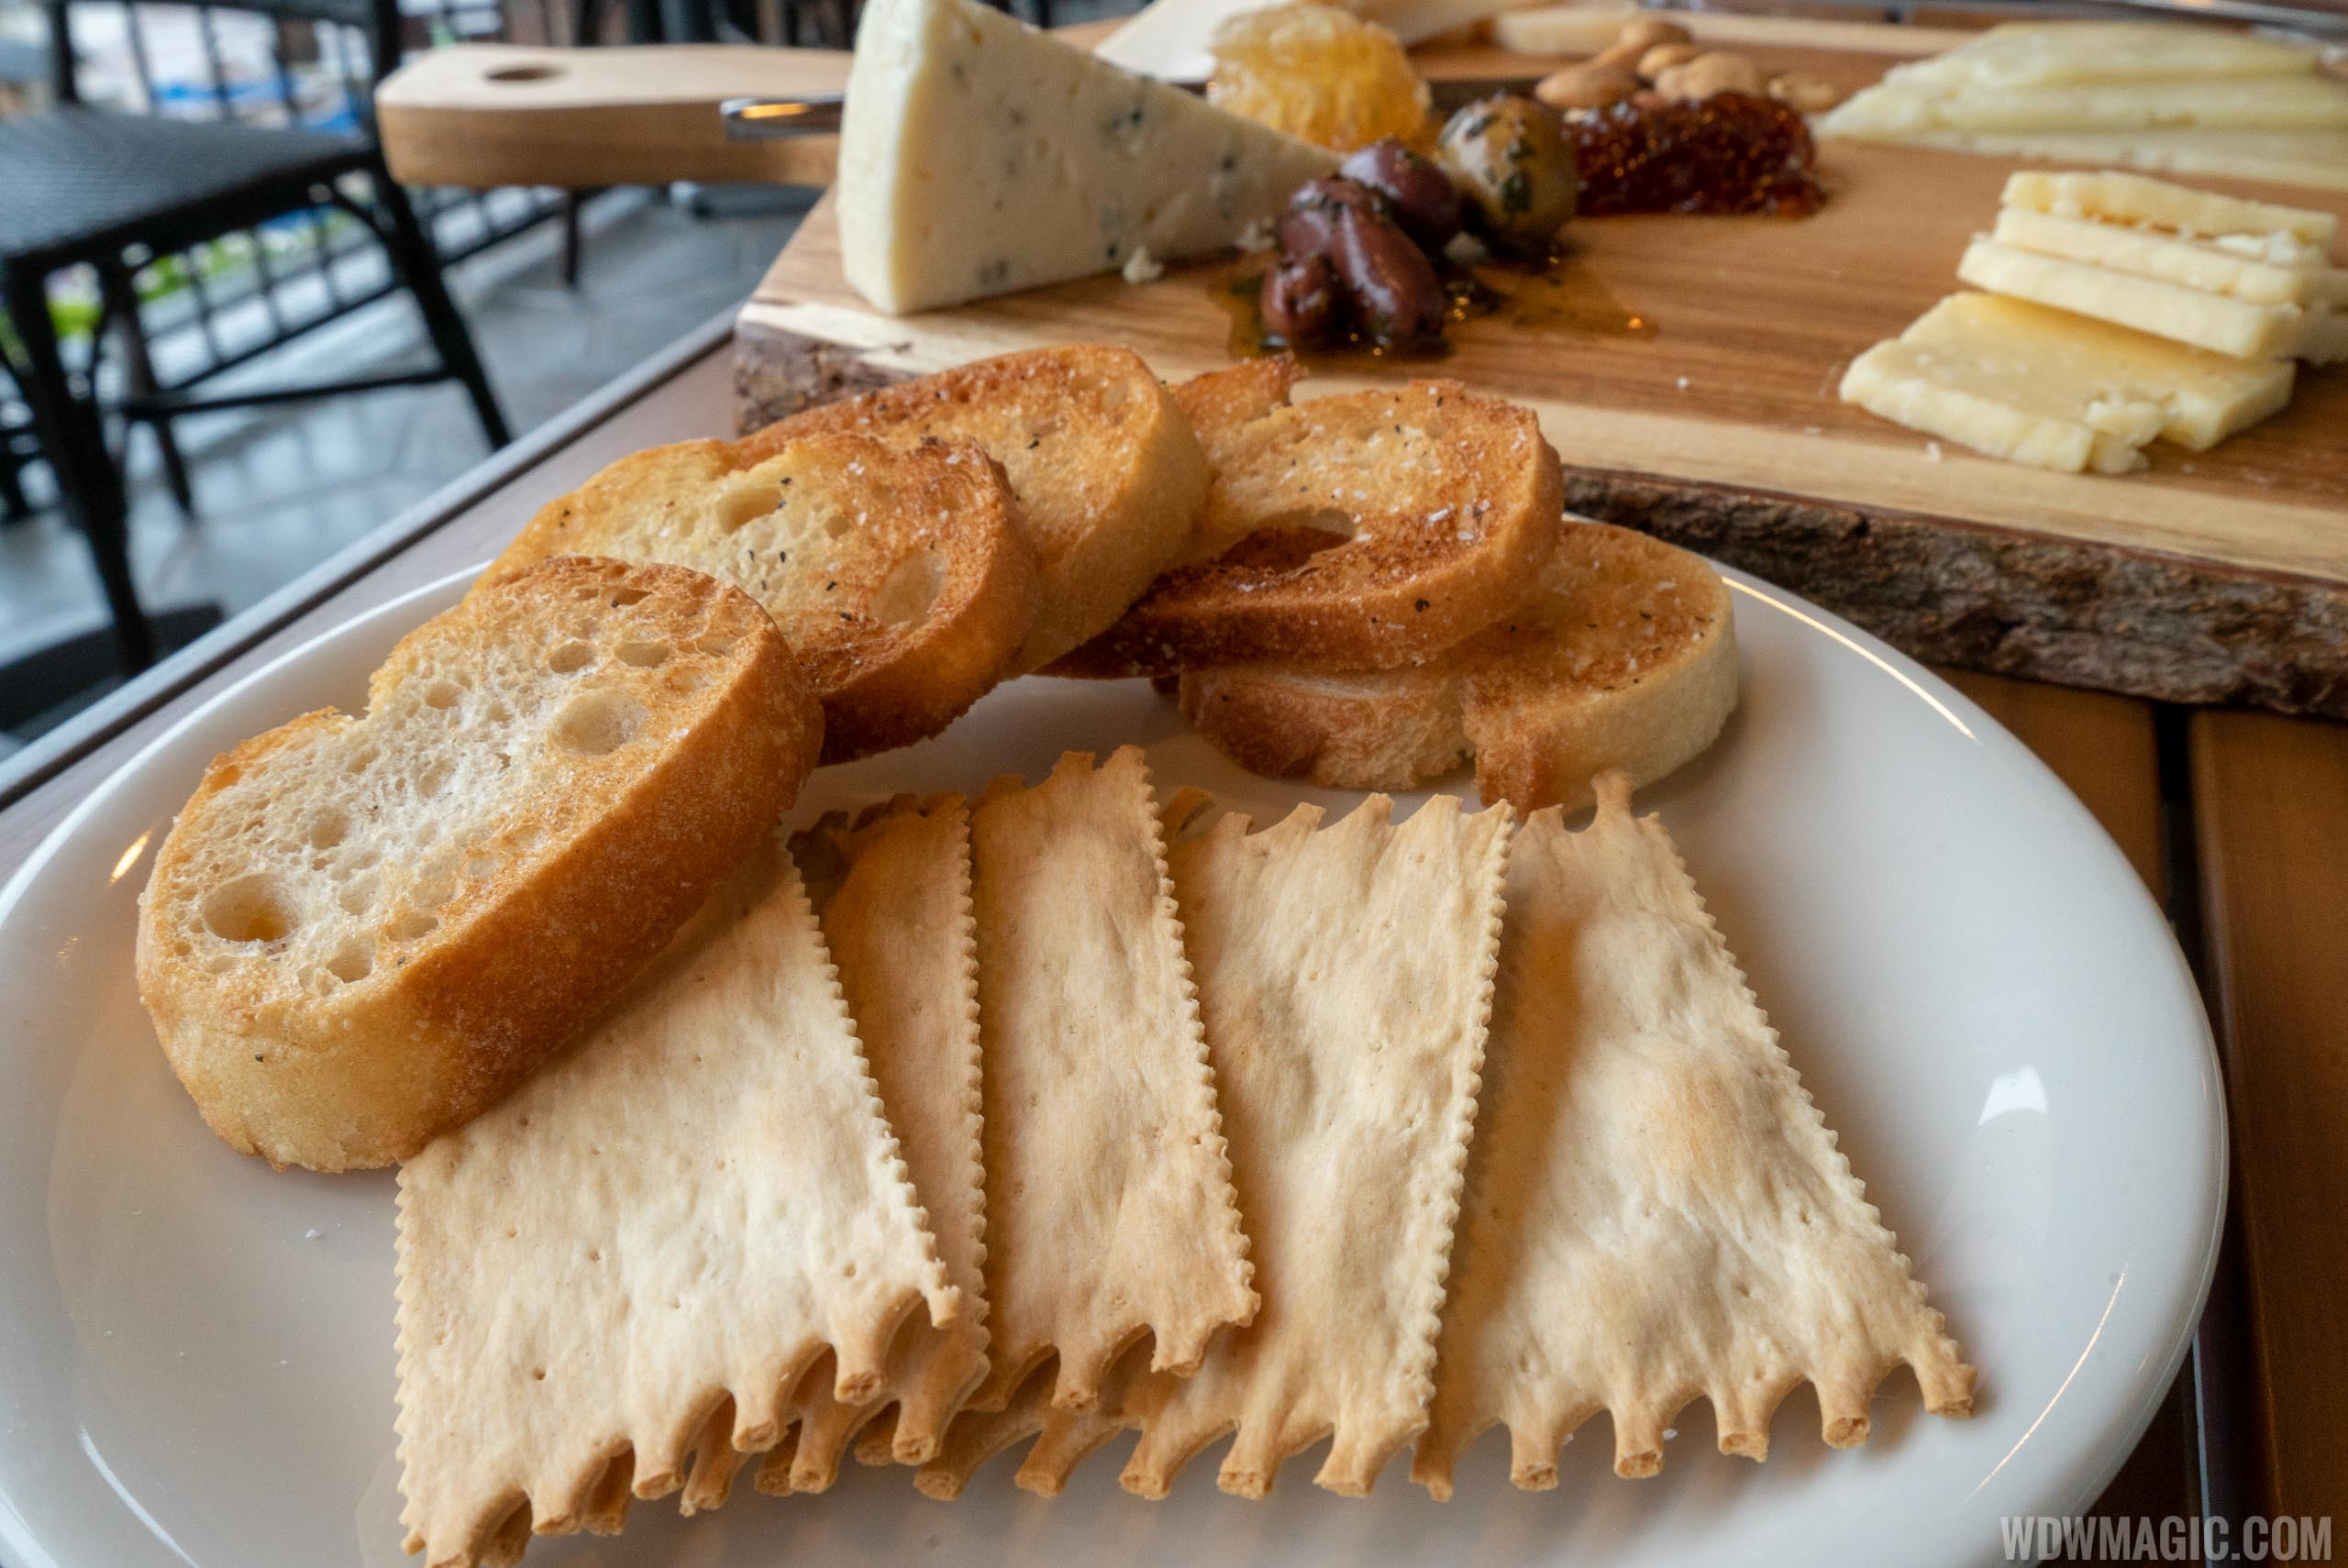 Wine Bar George - Artisanal Cheese Board $24